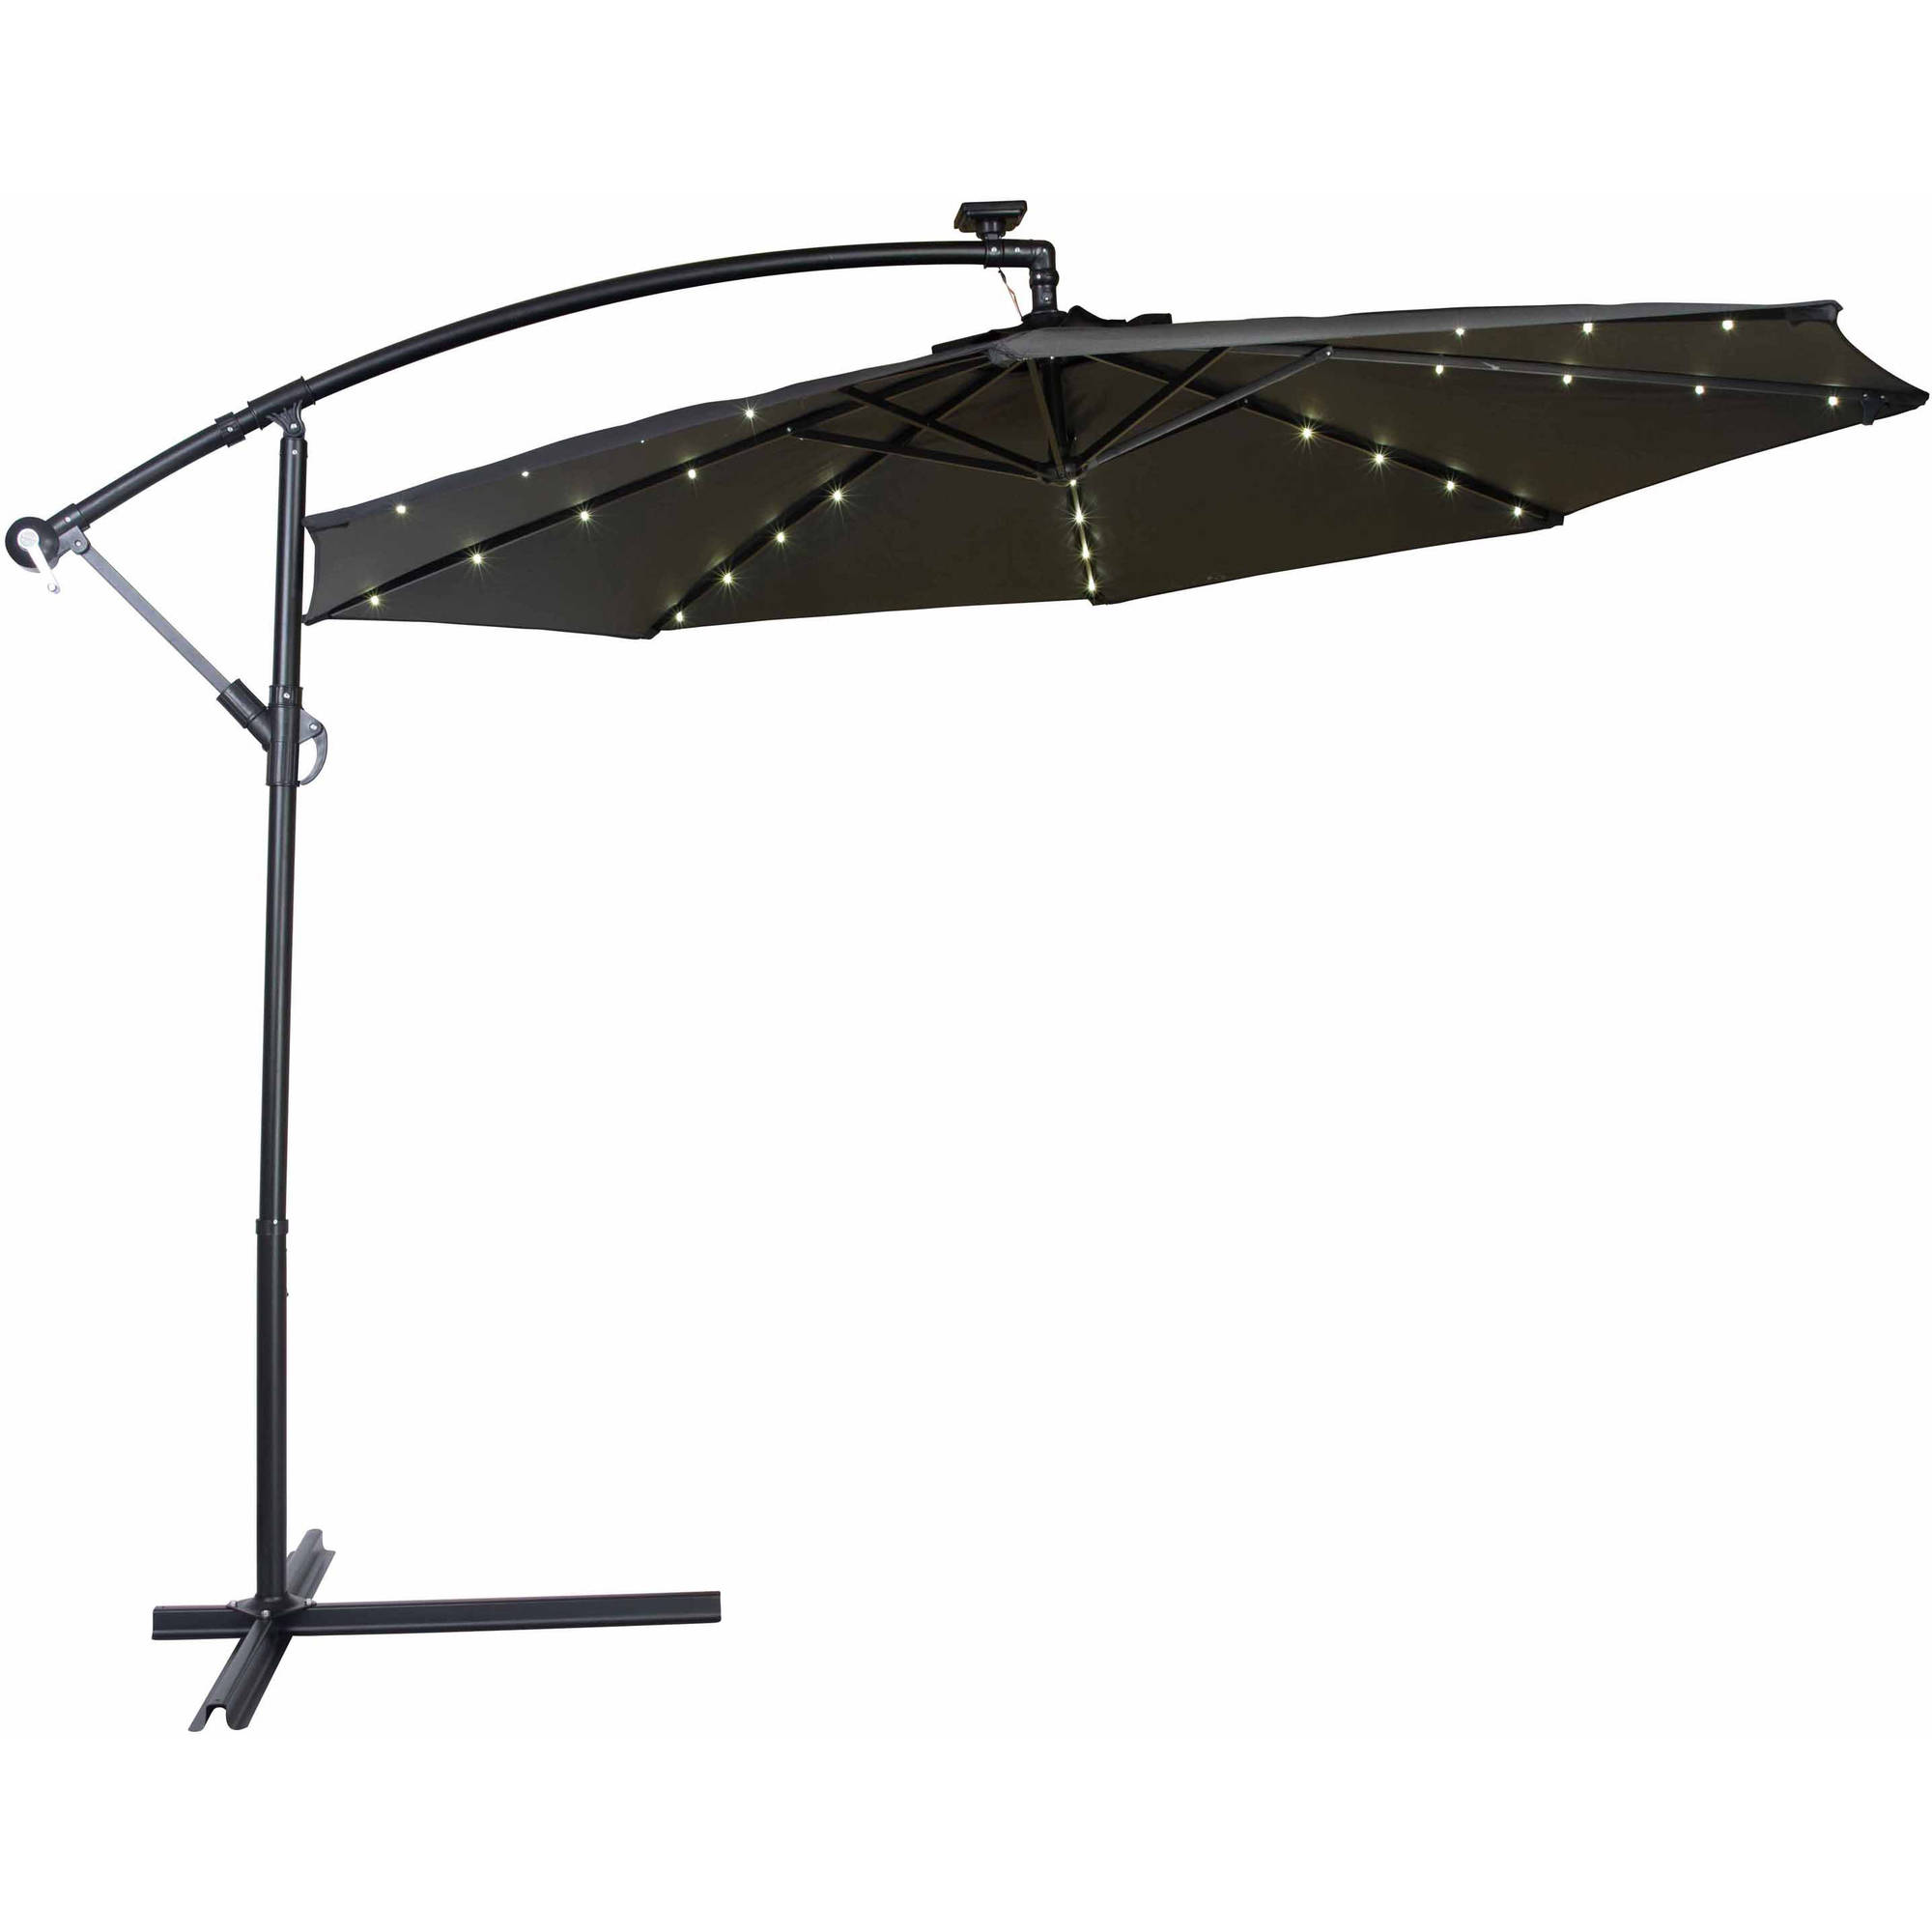 Charmant Deluxe Polyester Offset Patio Umbrella With LED Lights, 10u0027